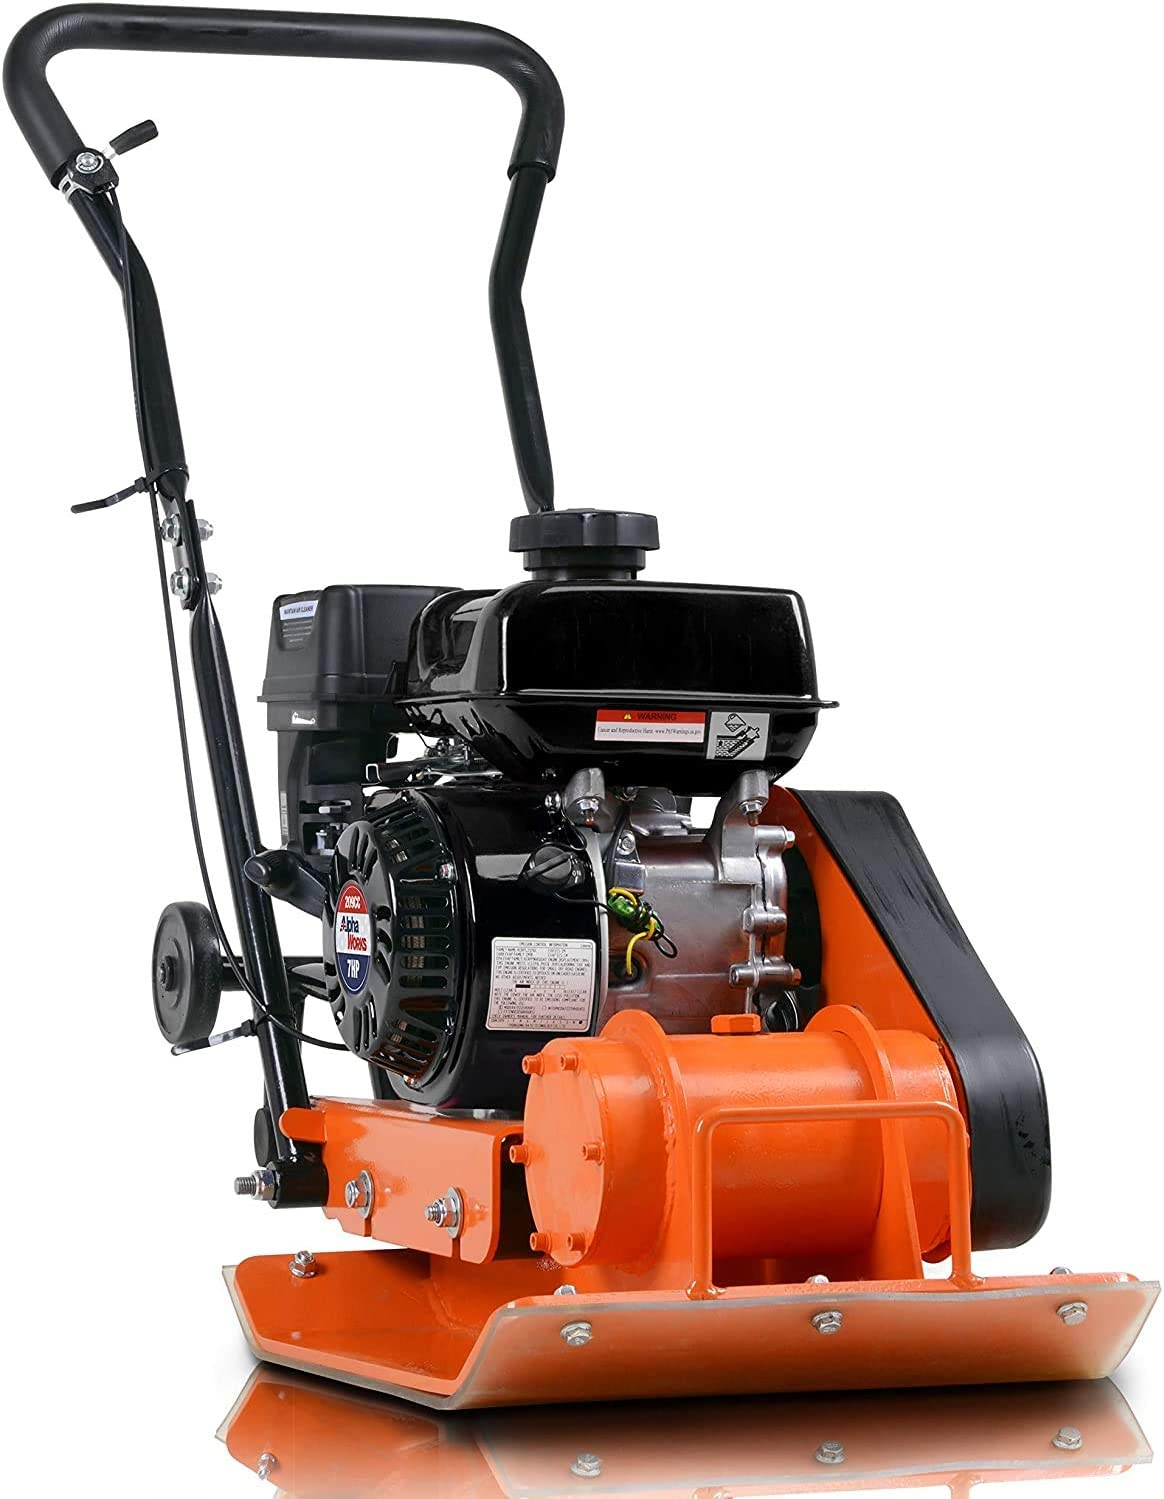 SuperHandy Plate Compactor AlphaWorks 7 HP 209cc Gas Engine 4200-Pounds of Compaction Force with 20 × 15 Inch Plate for Paving Projects Landscapes Sidewalks Patios EPA/CARB Compliant